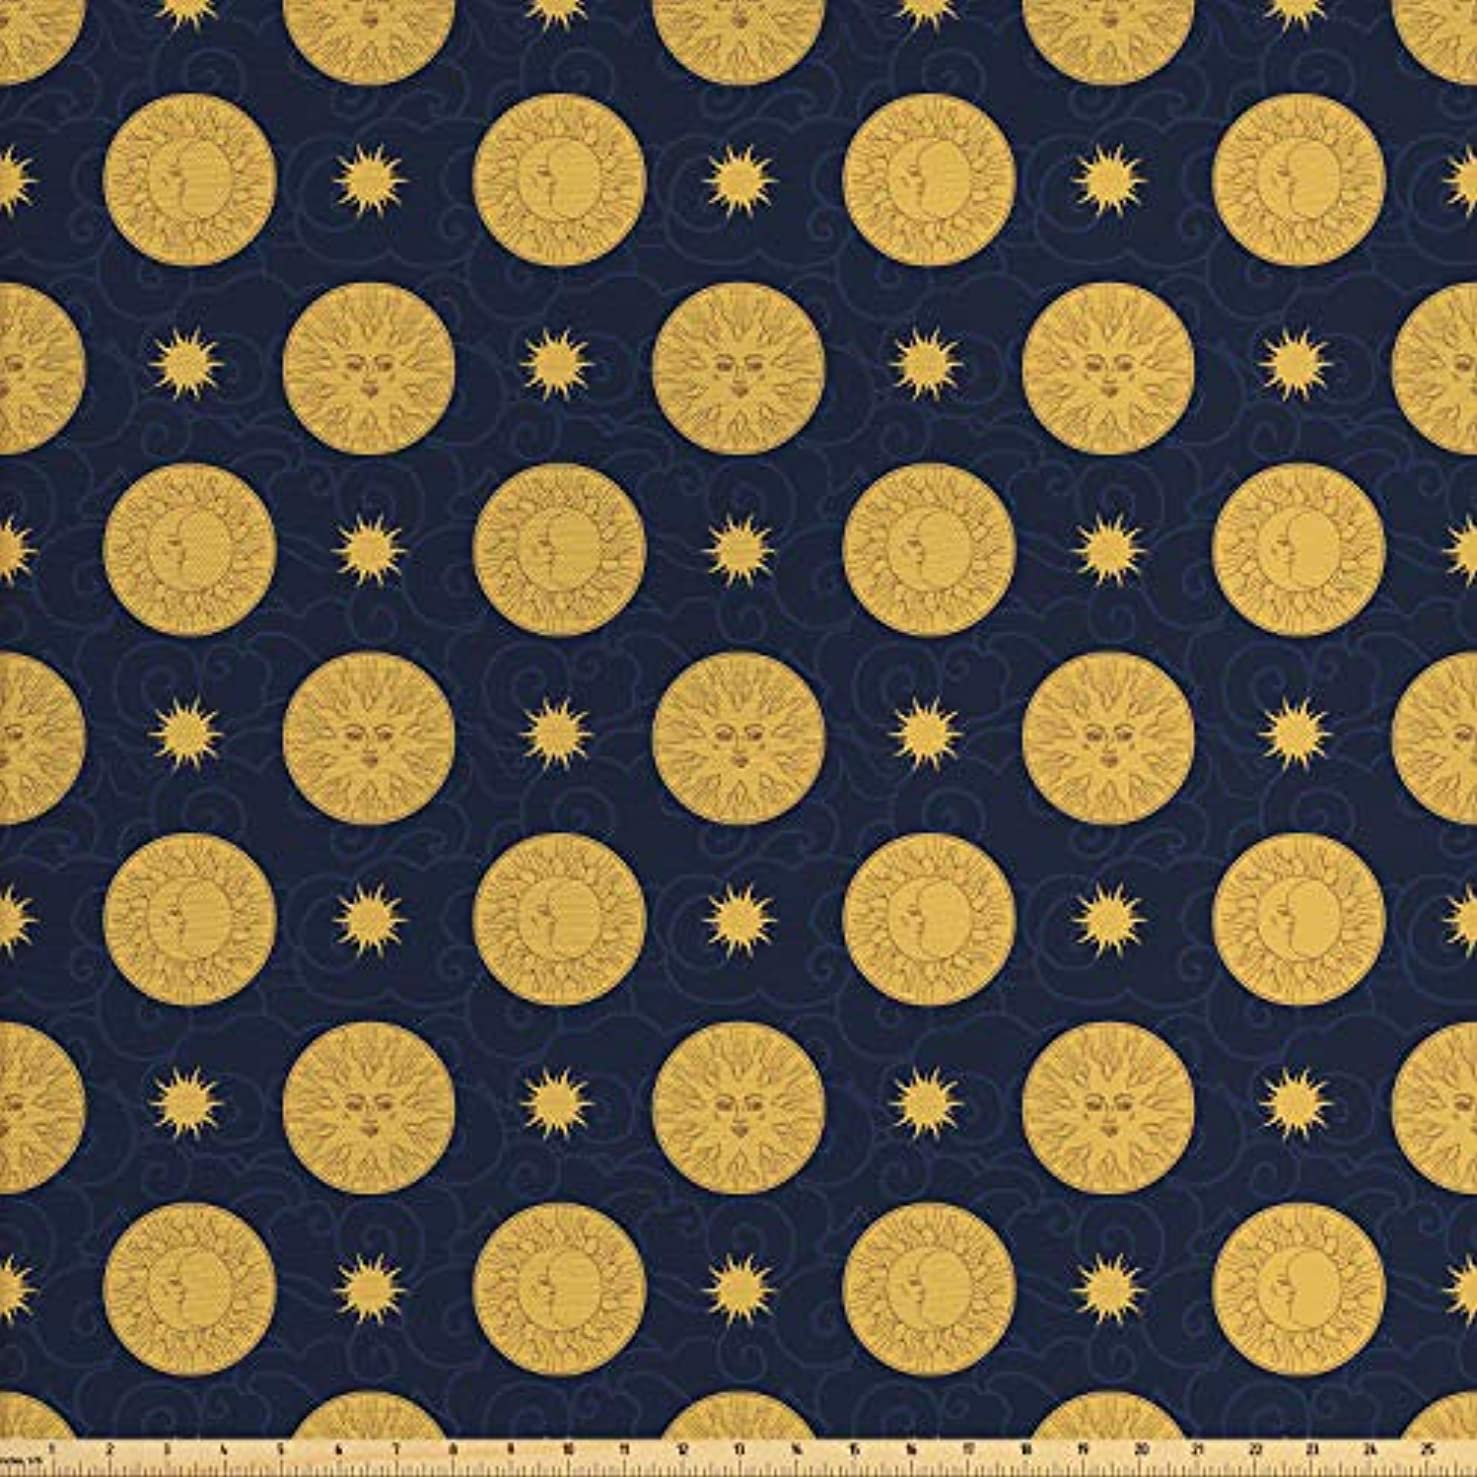 Lunarable Sun and Moon Fabric by The Yard, Vintage Tribal Style Celestial Bodies with Swirled Lines Background, Decorative Fabric for Upholstery and Home Accents, 1 Yard, Navy Blue Sand Brown